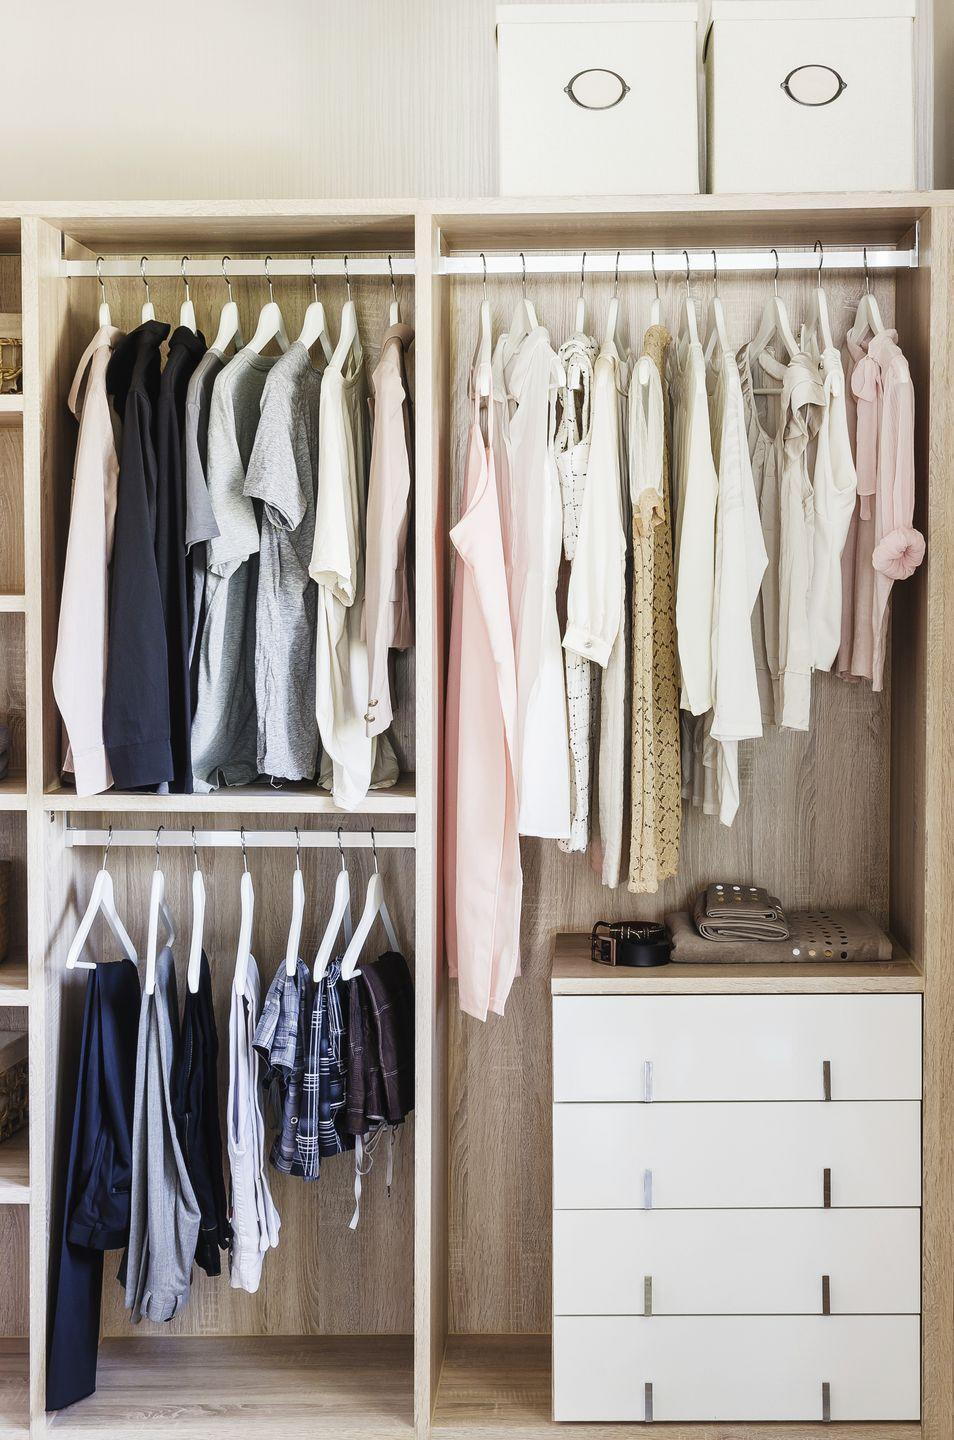 <p>Go through clothes and shoes from the season that's just ended — and remove anything stained, in need of repair, or worn out, Phillip advises. Make a second pass through spring and summer clothes as you take them out of storage. Try on anything you're unsure about before giving it closet space. </p>